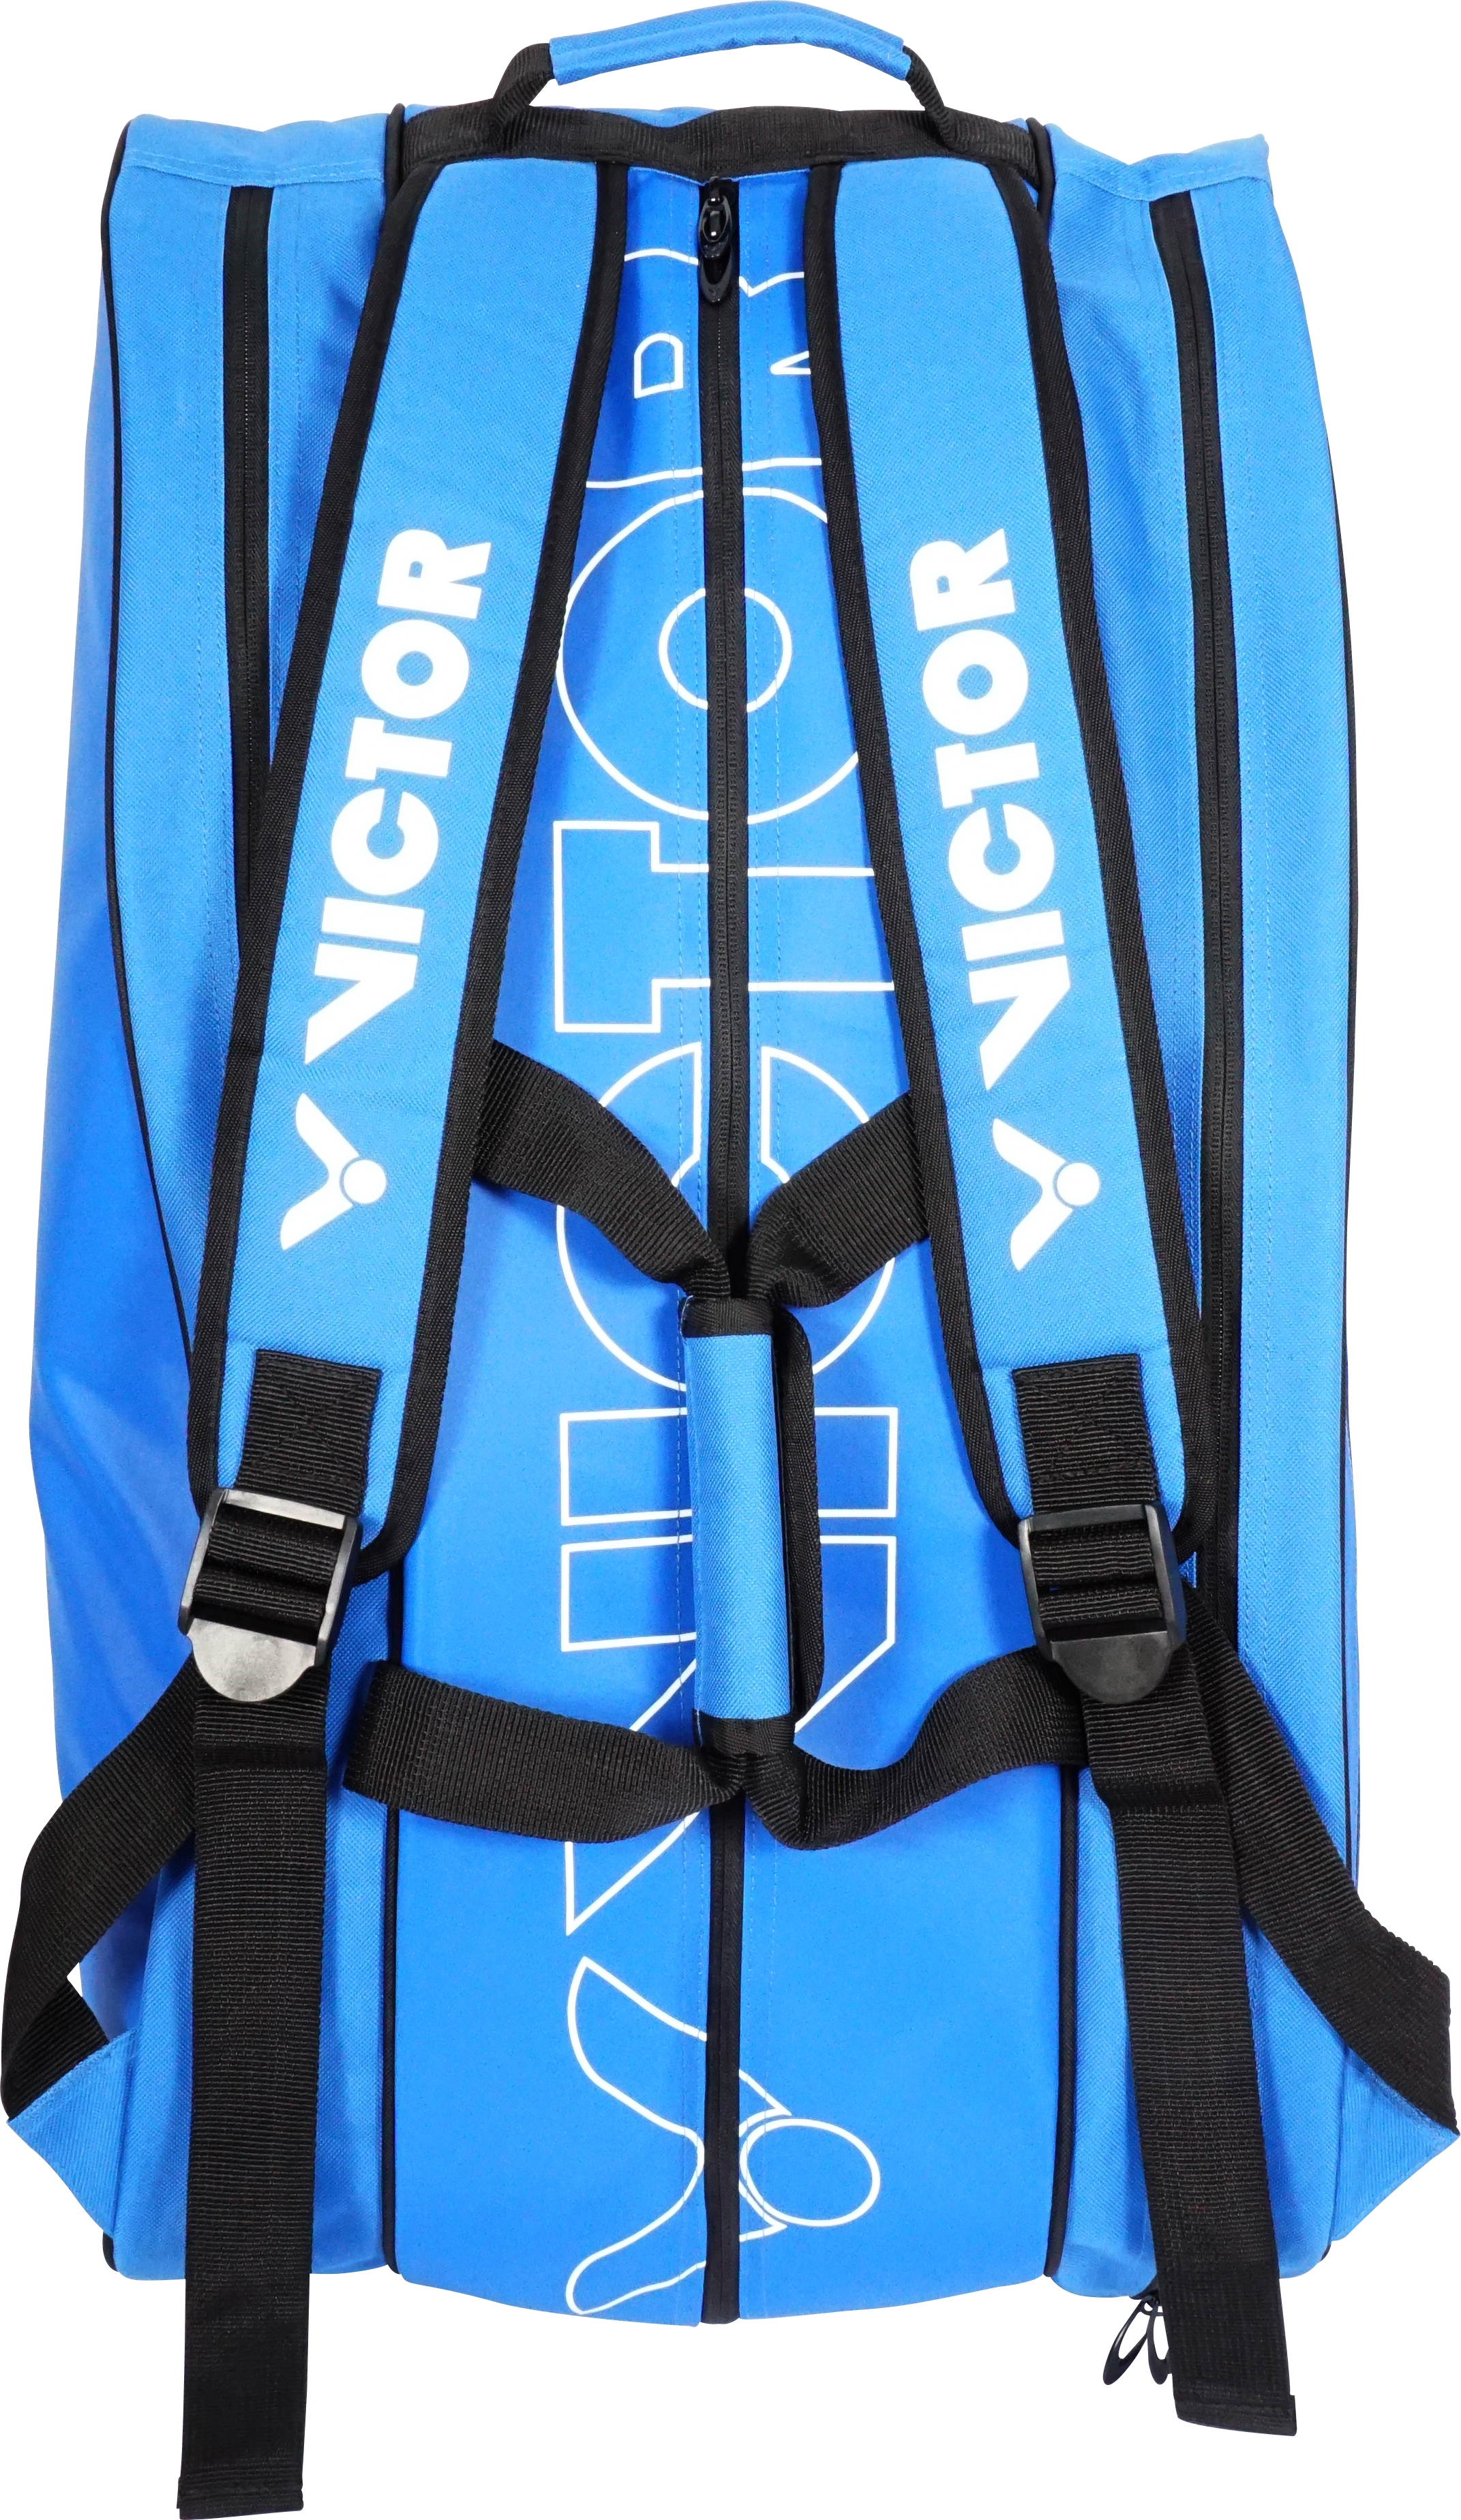 VICTOR Multithermobag 9031 blue